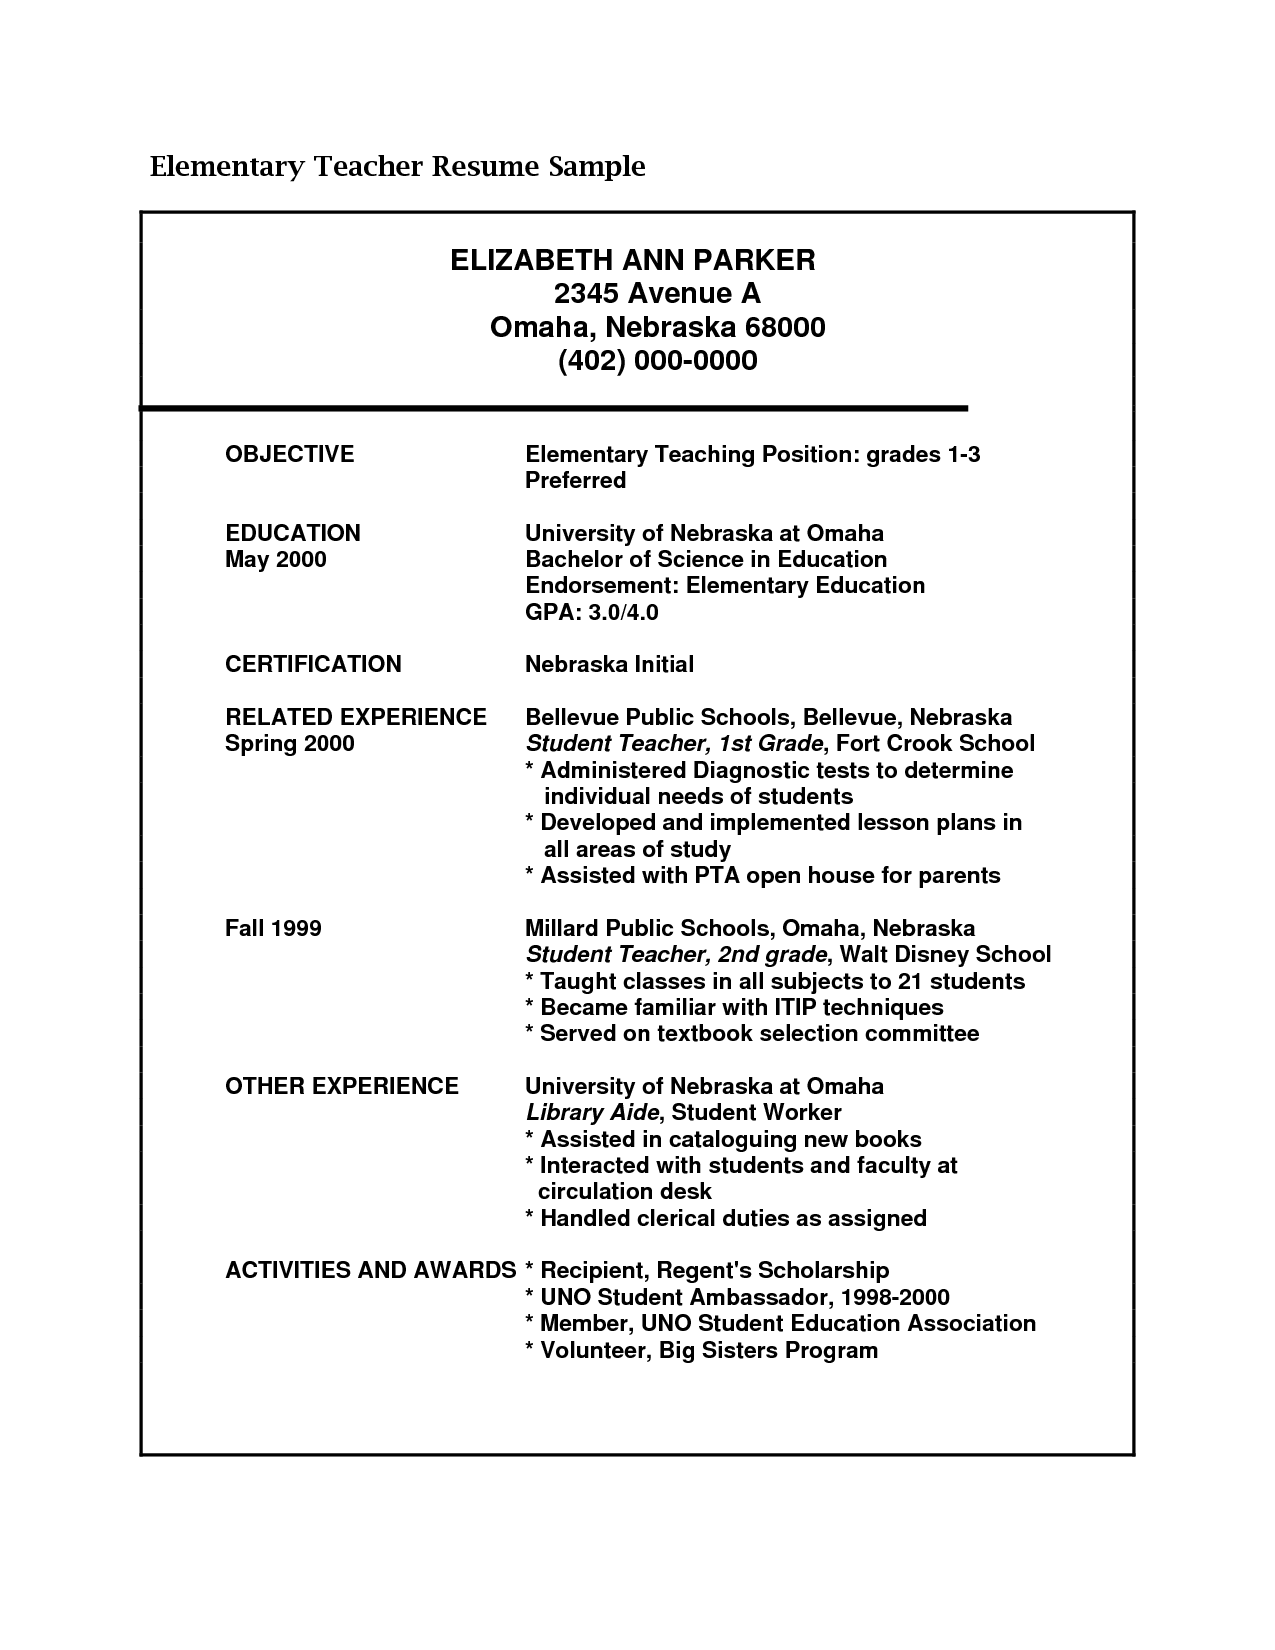 Resume Objective Statement For Teacher   Http://www.resumecareer.info/  Objective Statement On Resume